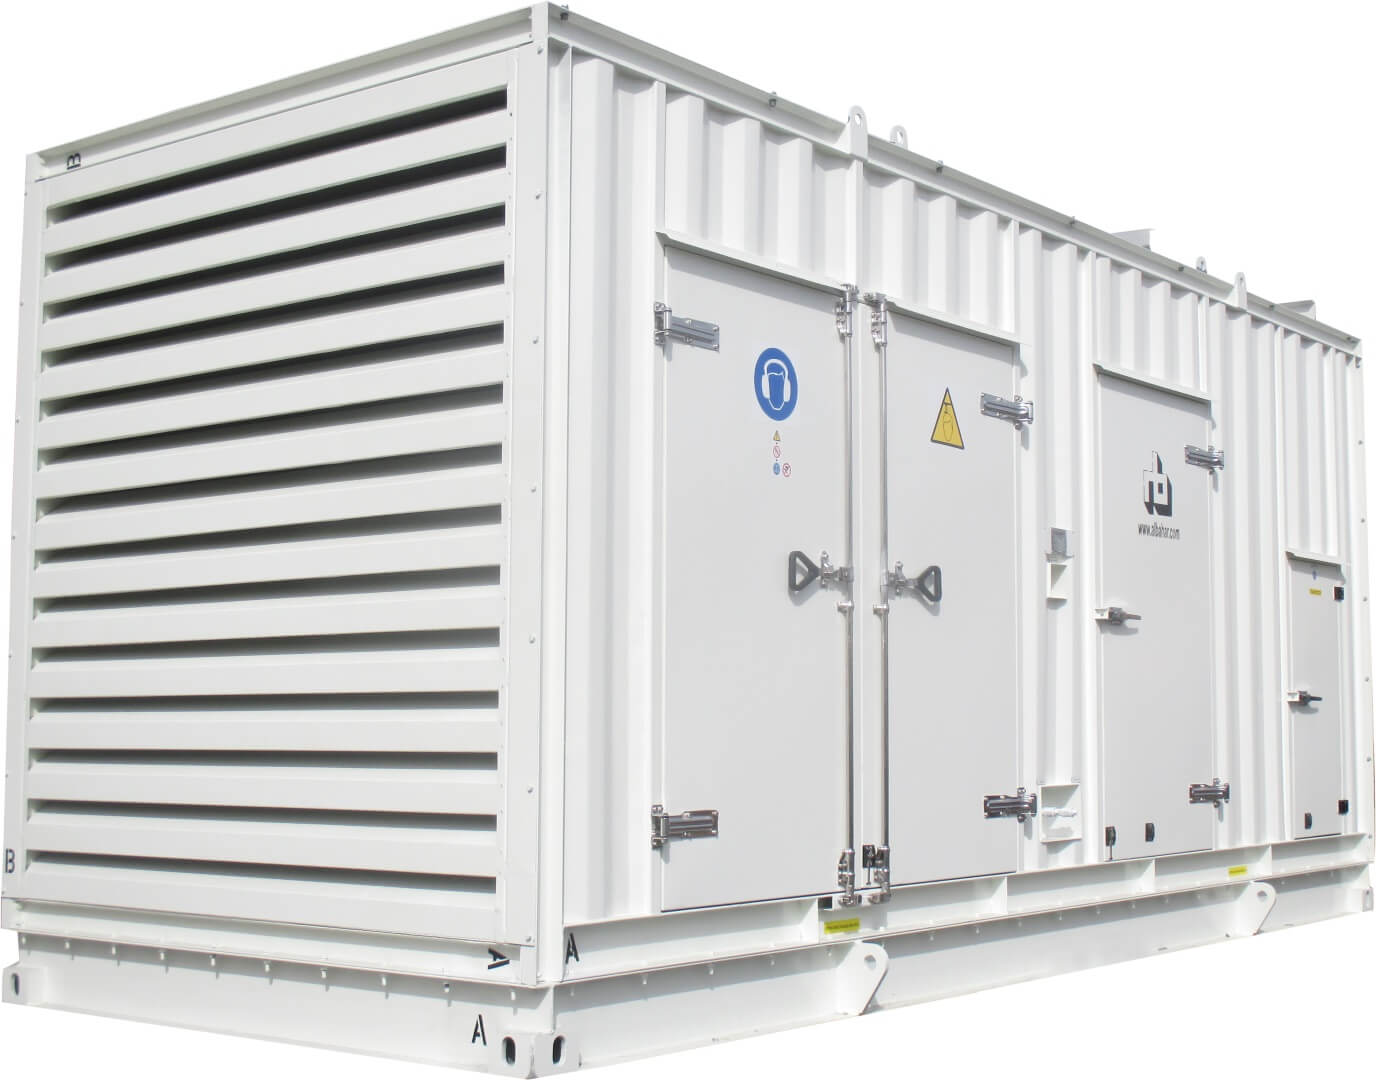 transformer switchgrear - Transformer & Switchgear Containers